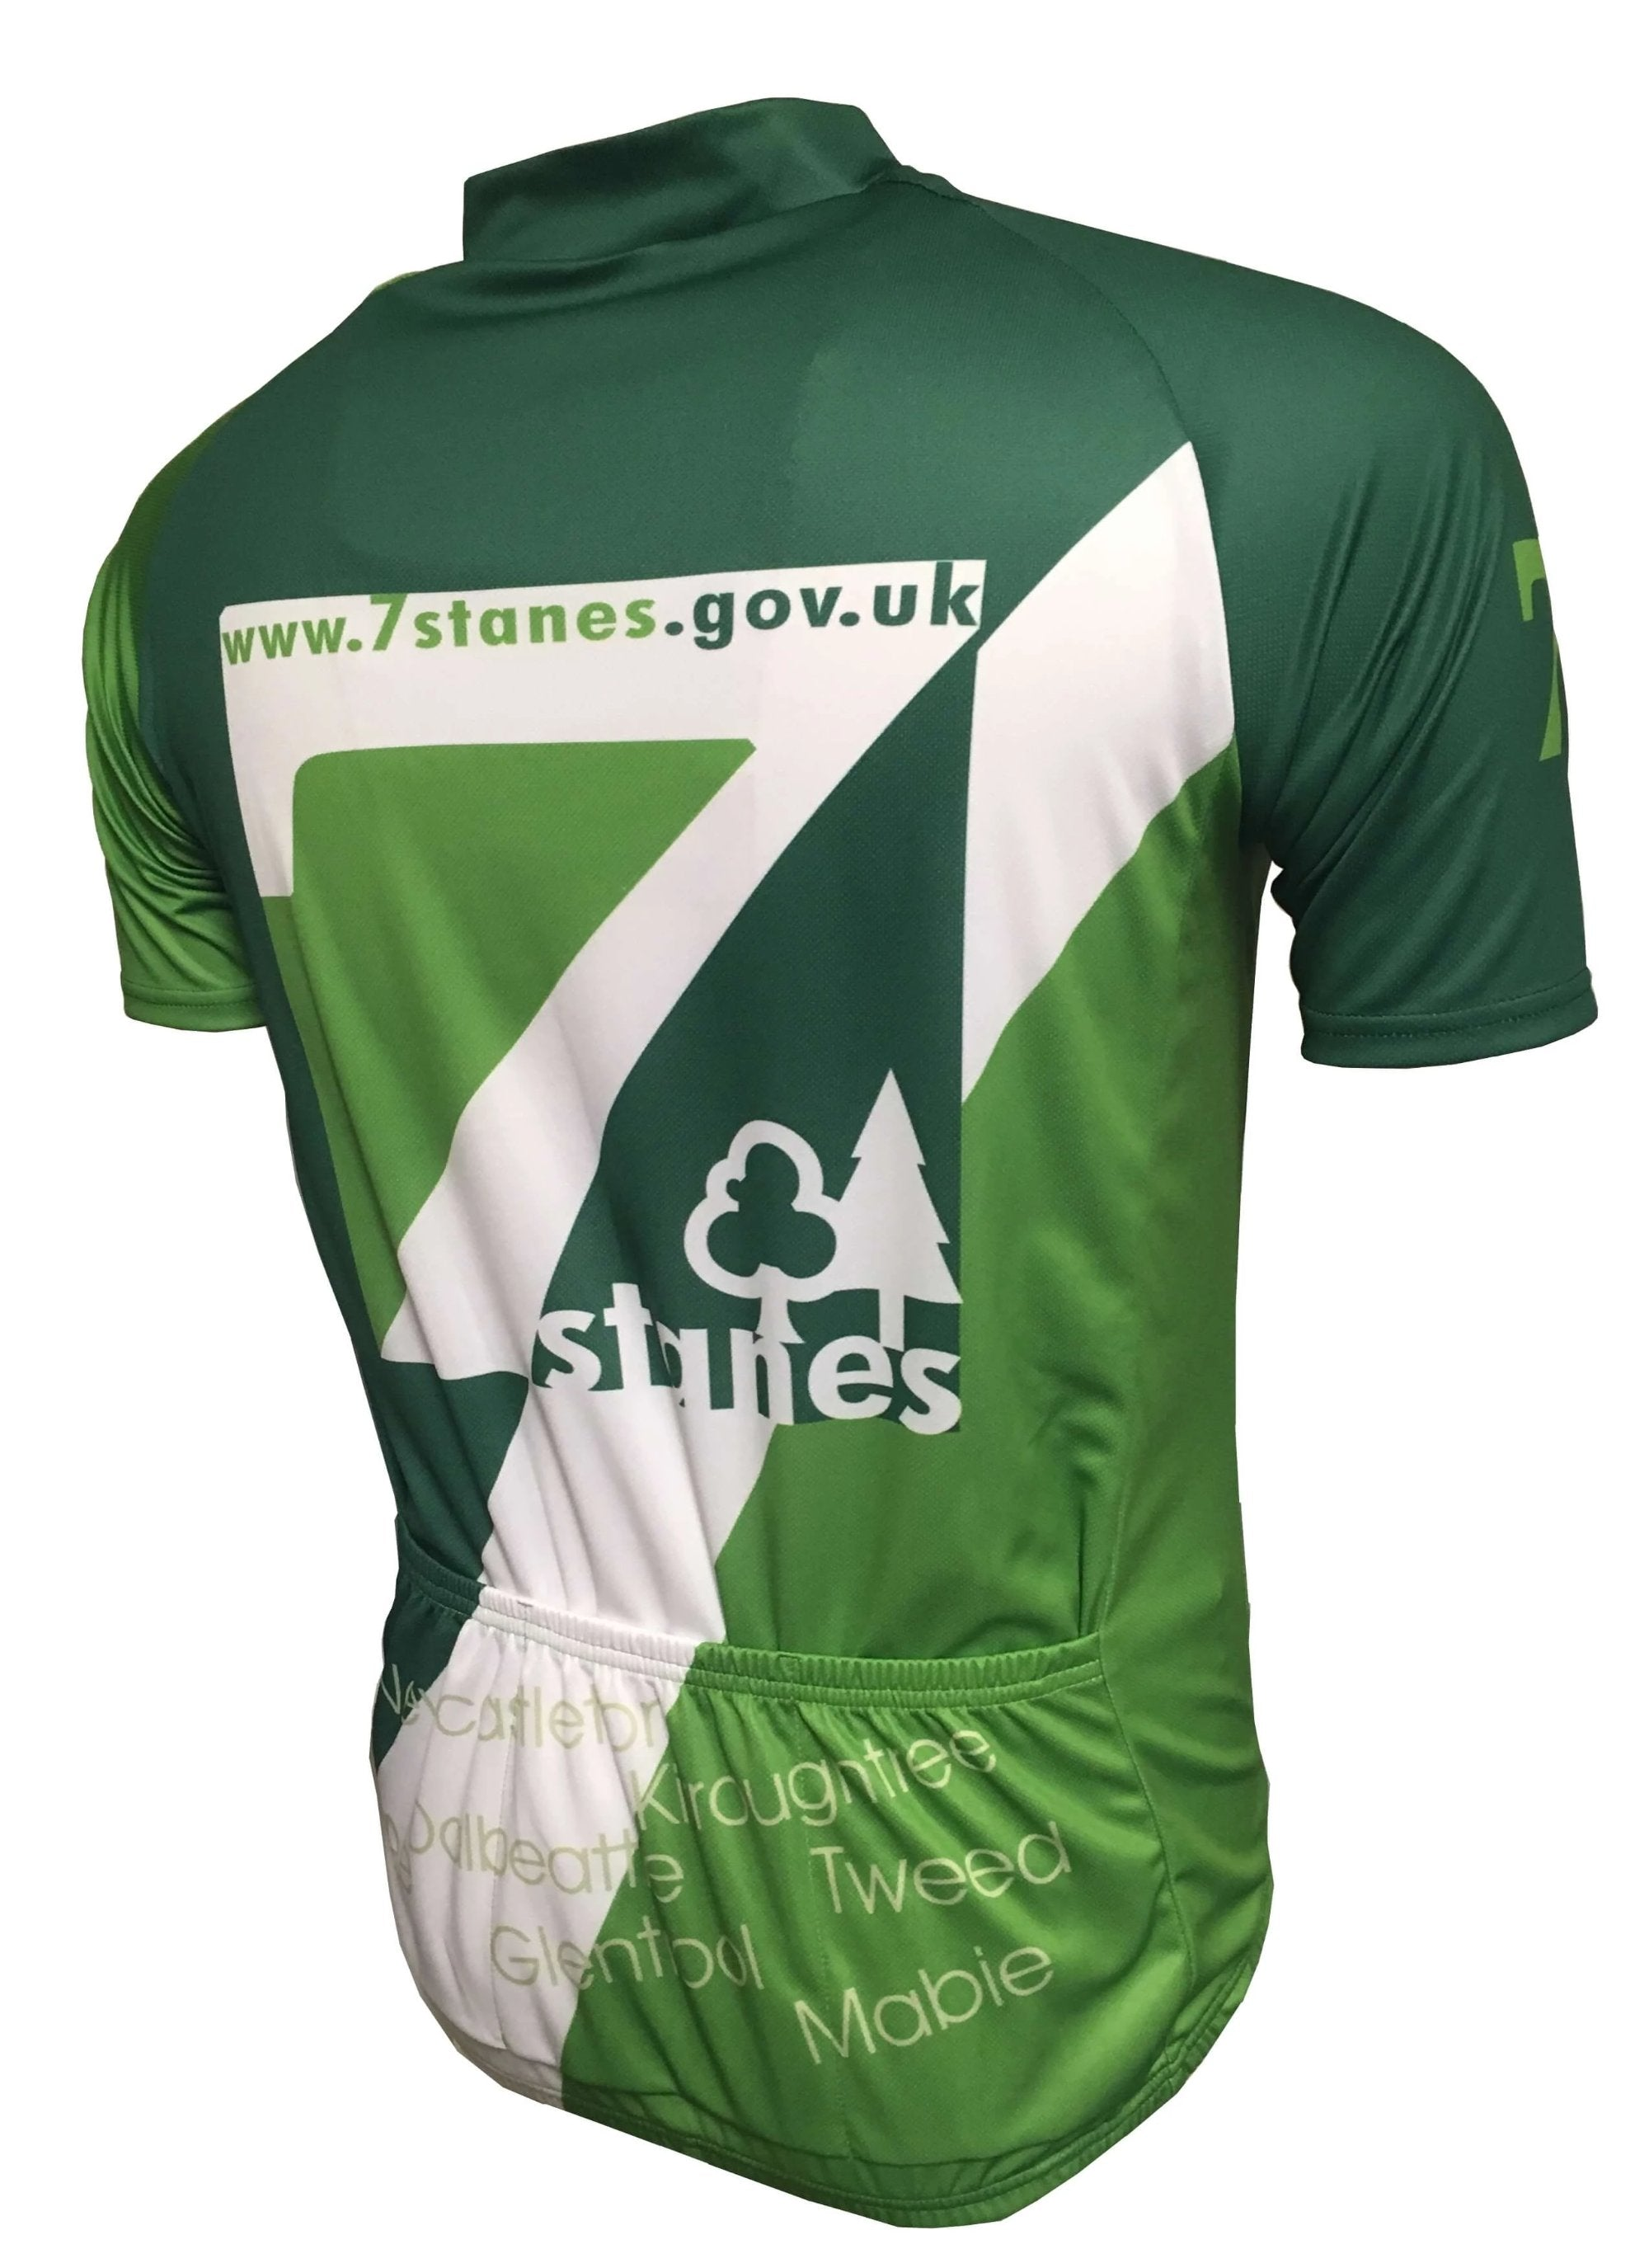 7 Stanes Classic Cycling Jersey Back